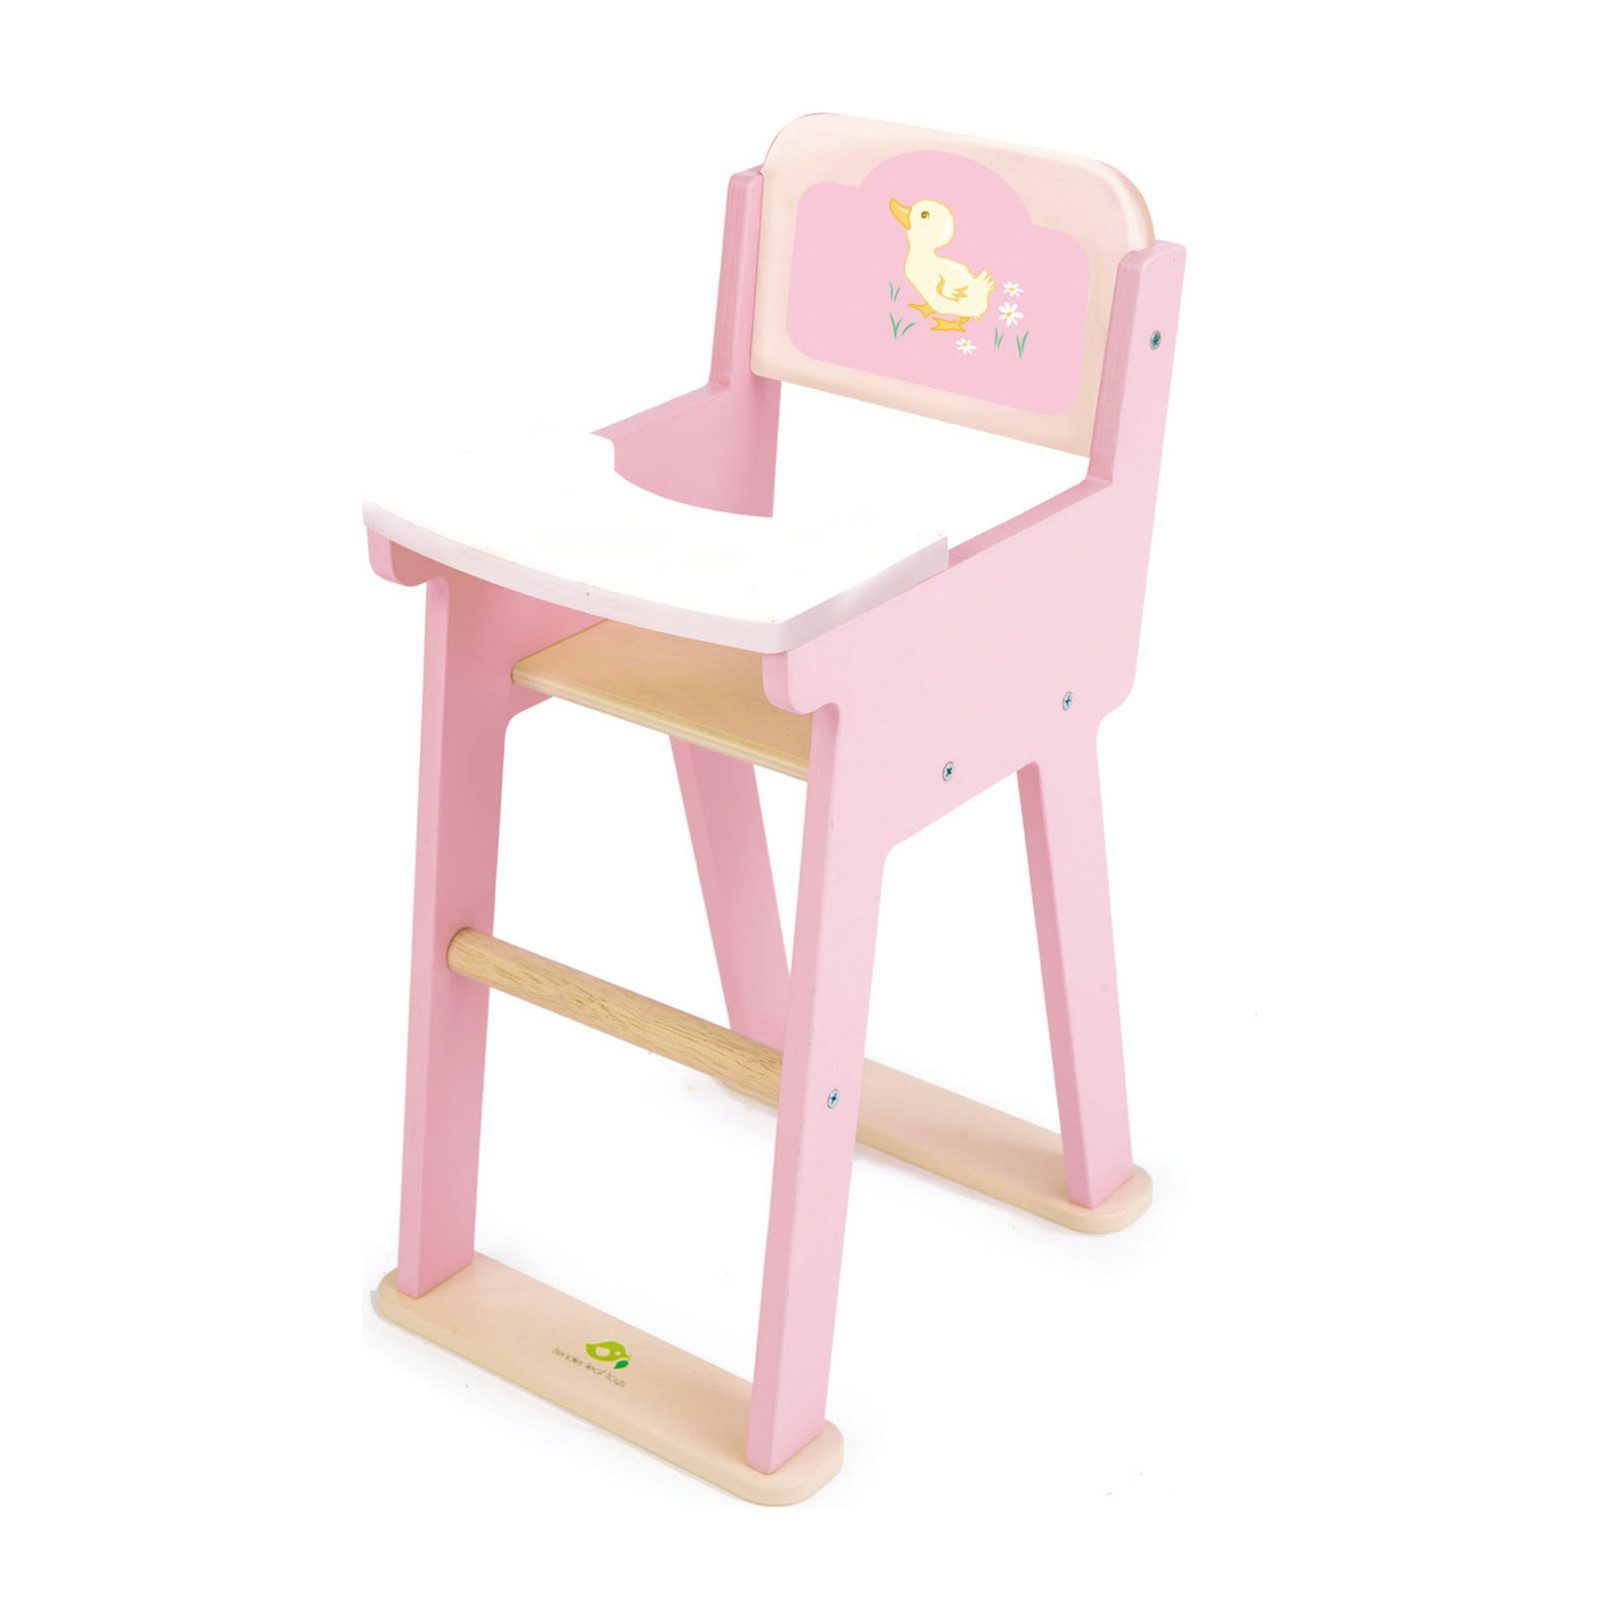 Sweetie Pie Dolly Chair In 2020 Doll High Chair Child Doll Pottery Barn Kids